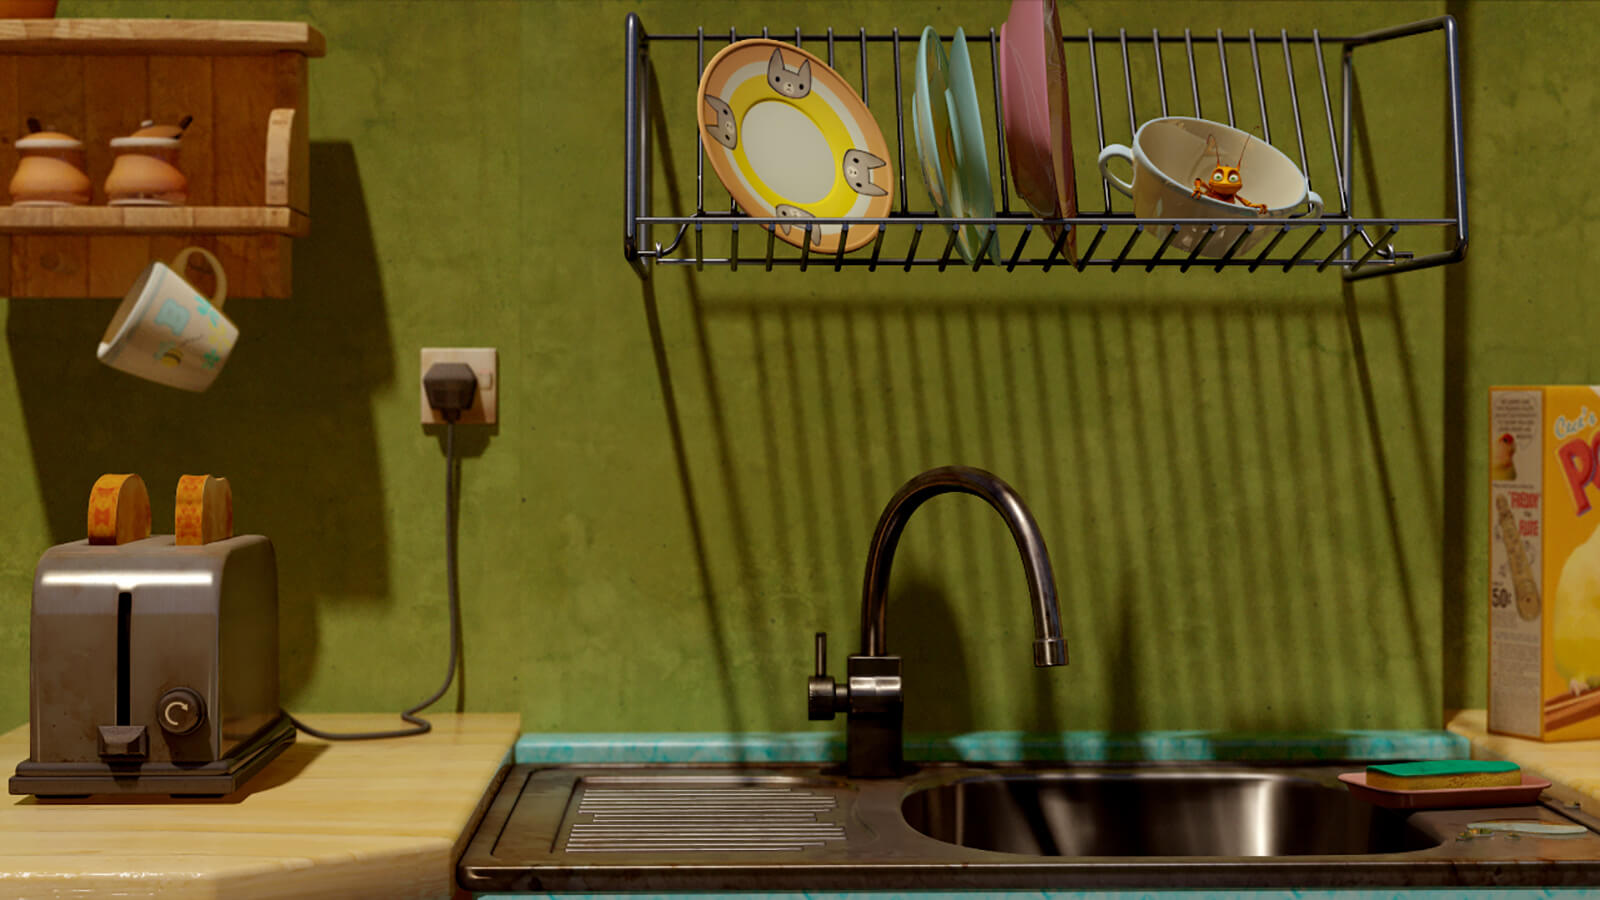 A colorful CG kitchen scene with a sink, toaster, and drying rack with a roach sitting in a tea cup.